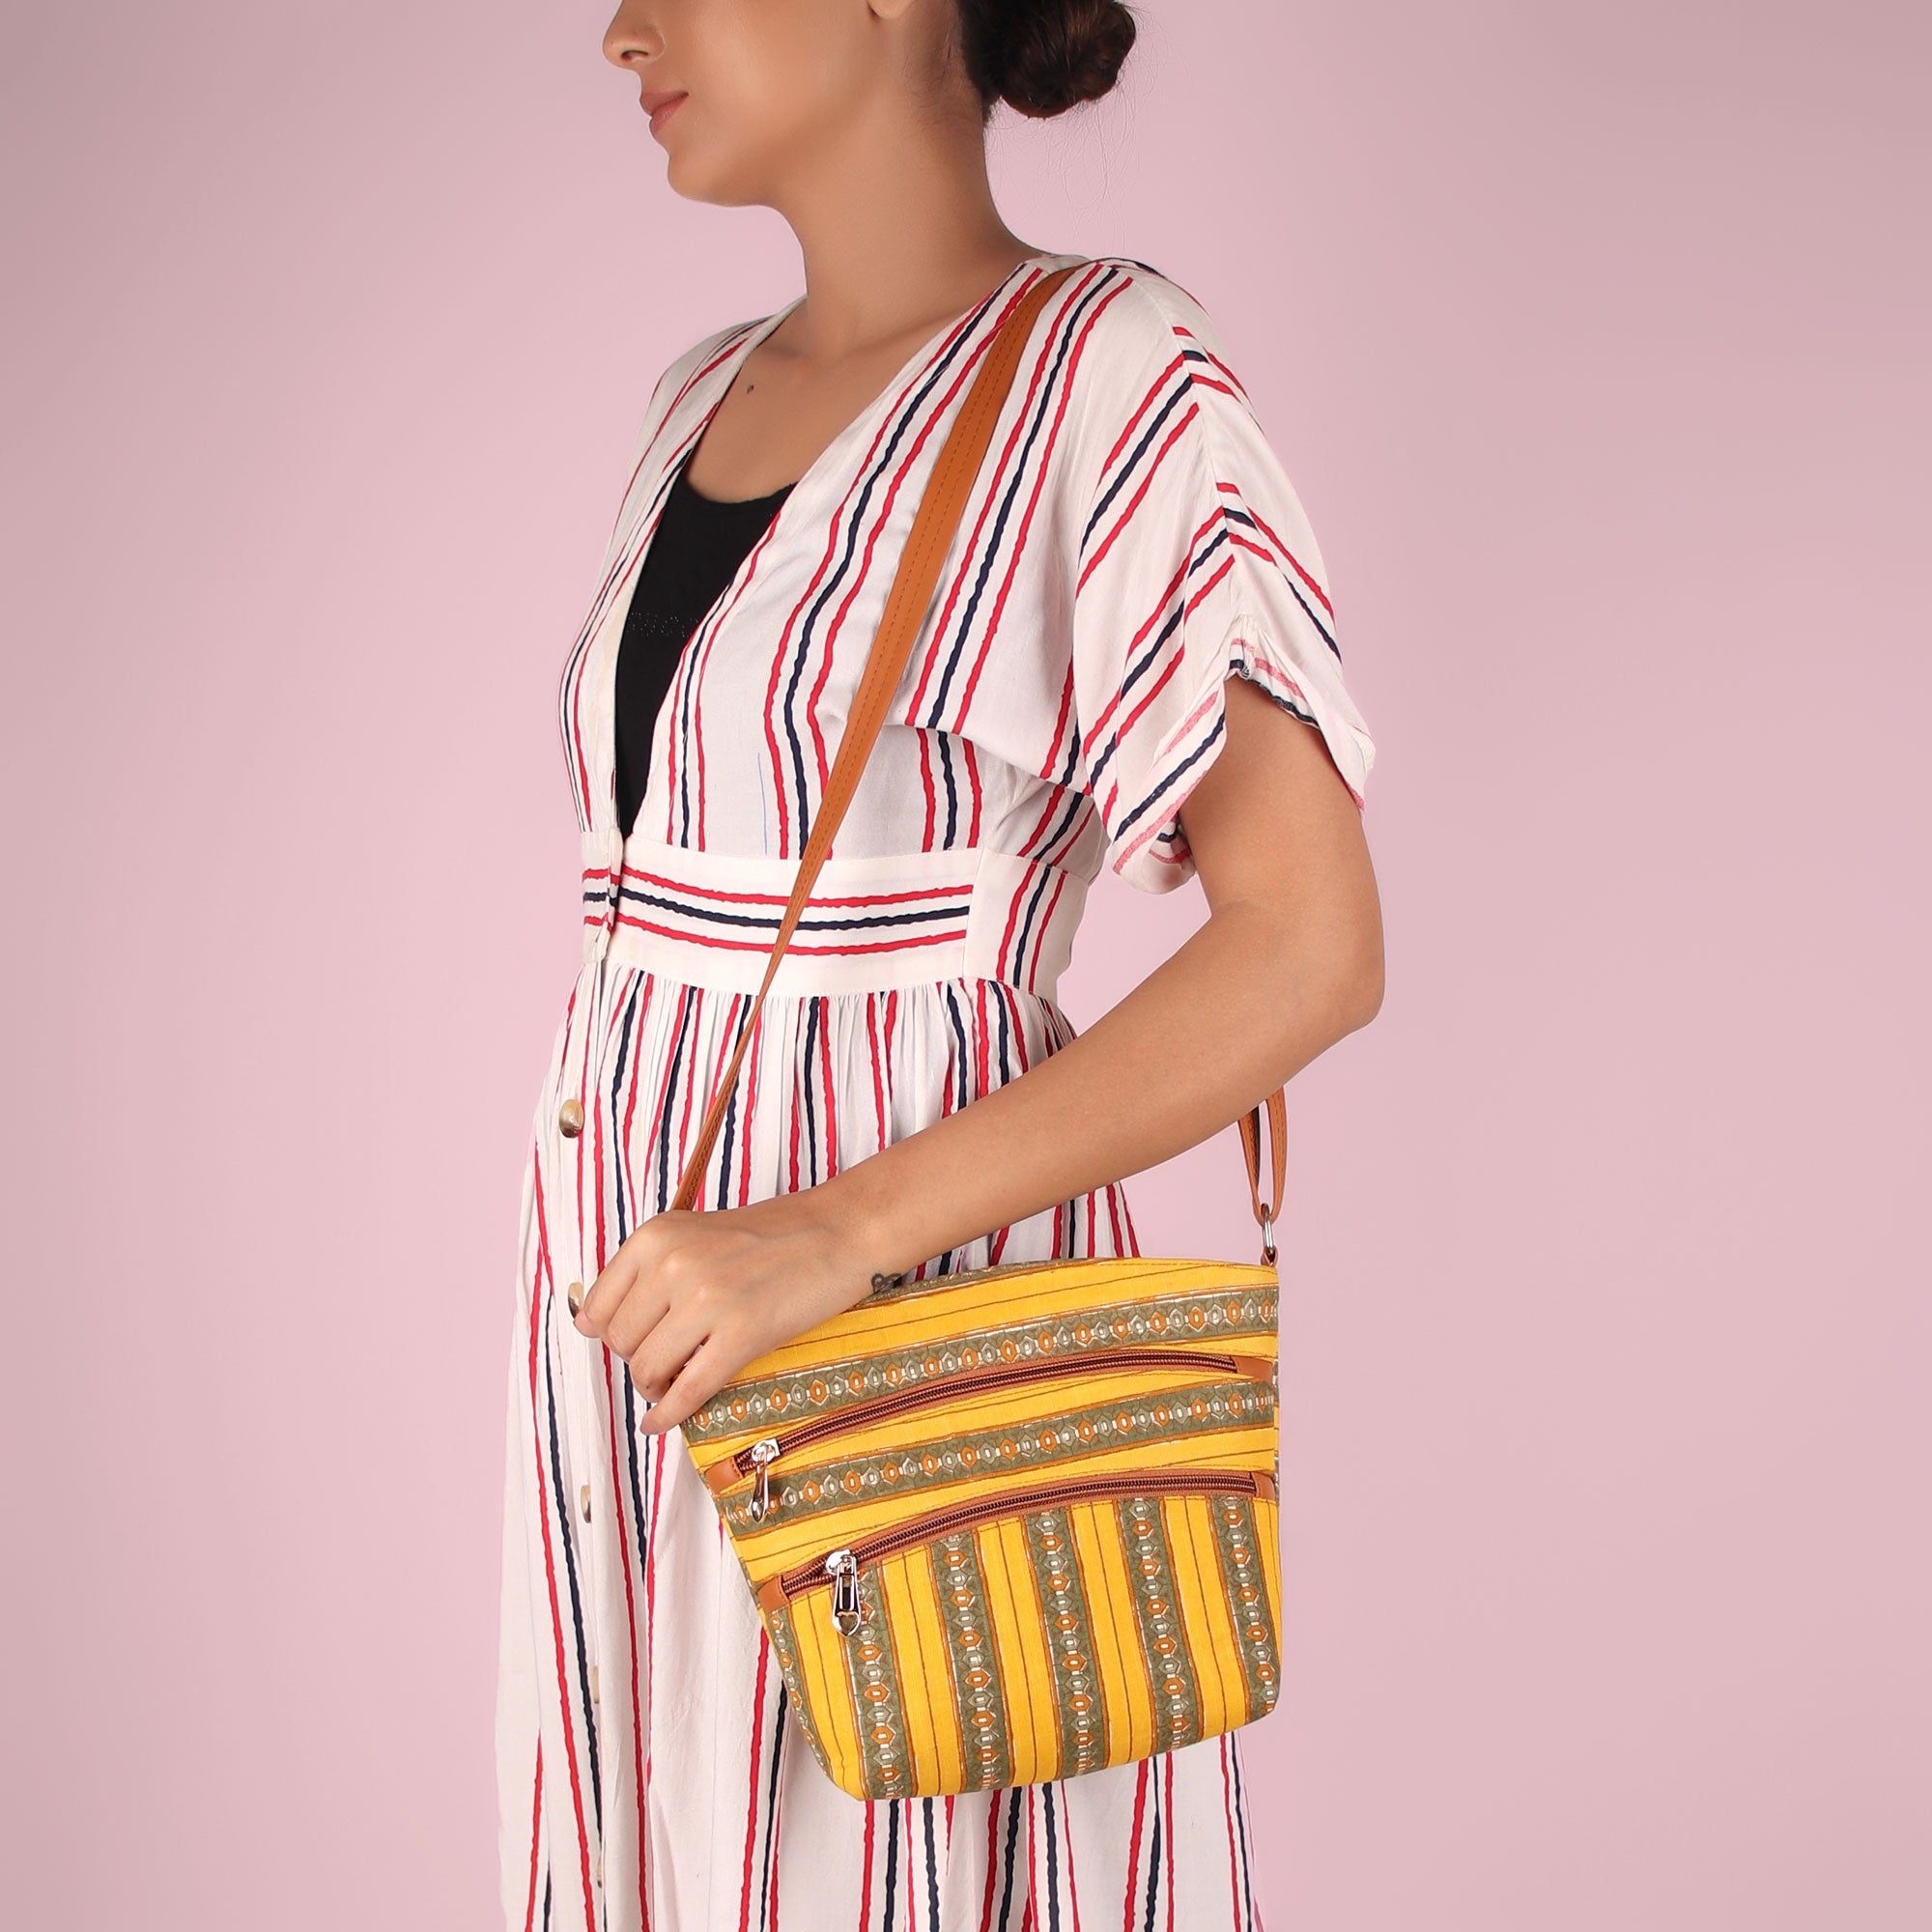 Sling Bag,The Oval Stripes Asymmetrical Sling Bag - Cippele Multi Store